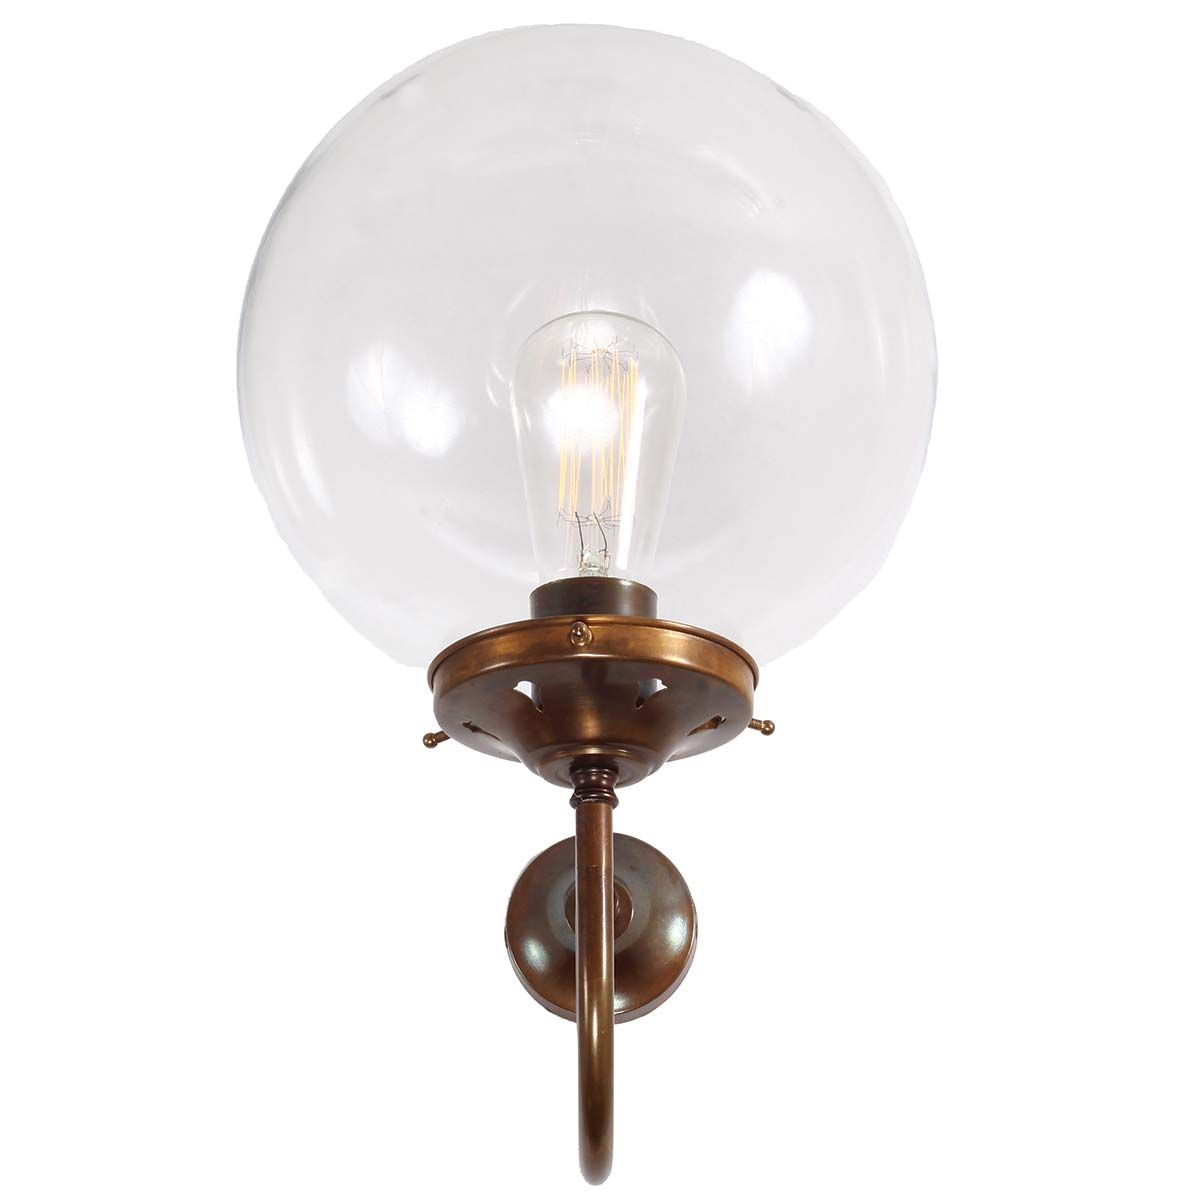 Applique murale en laiton antique et globe en verre Riad Mullan Lighting